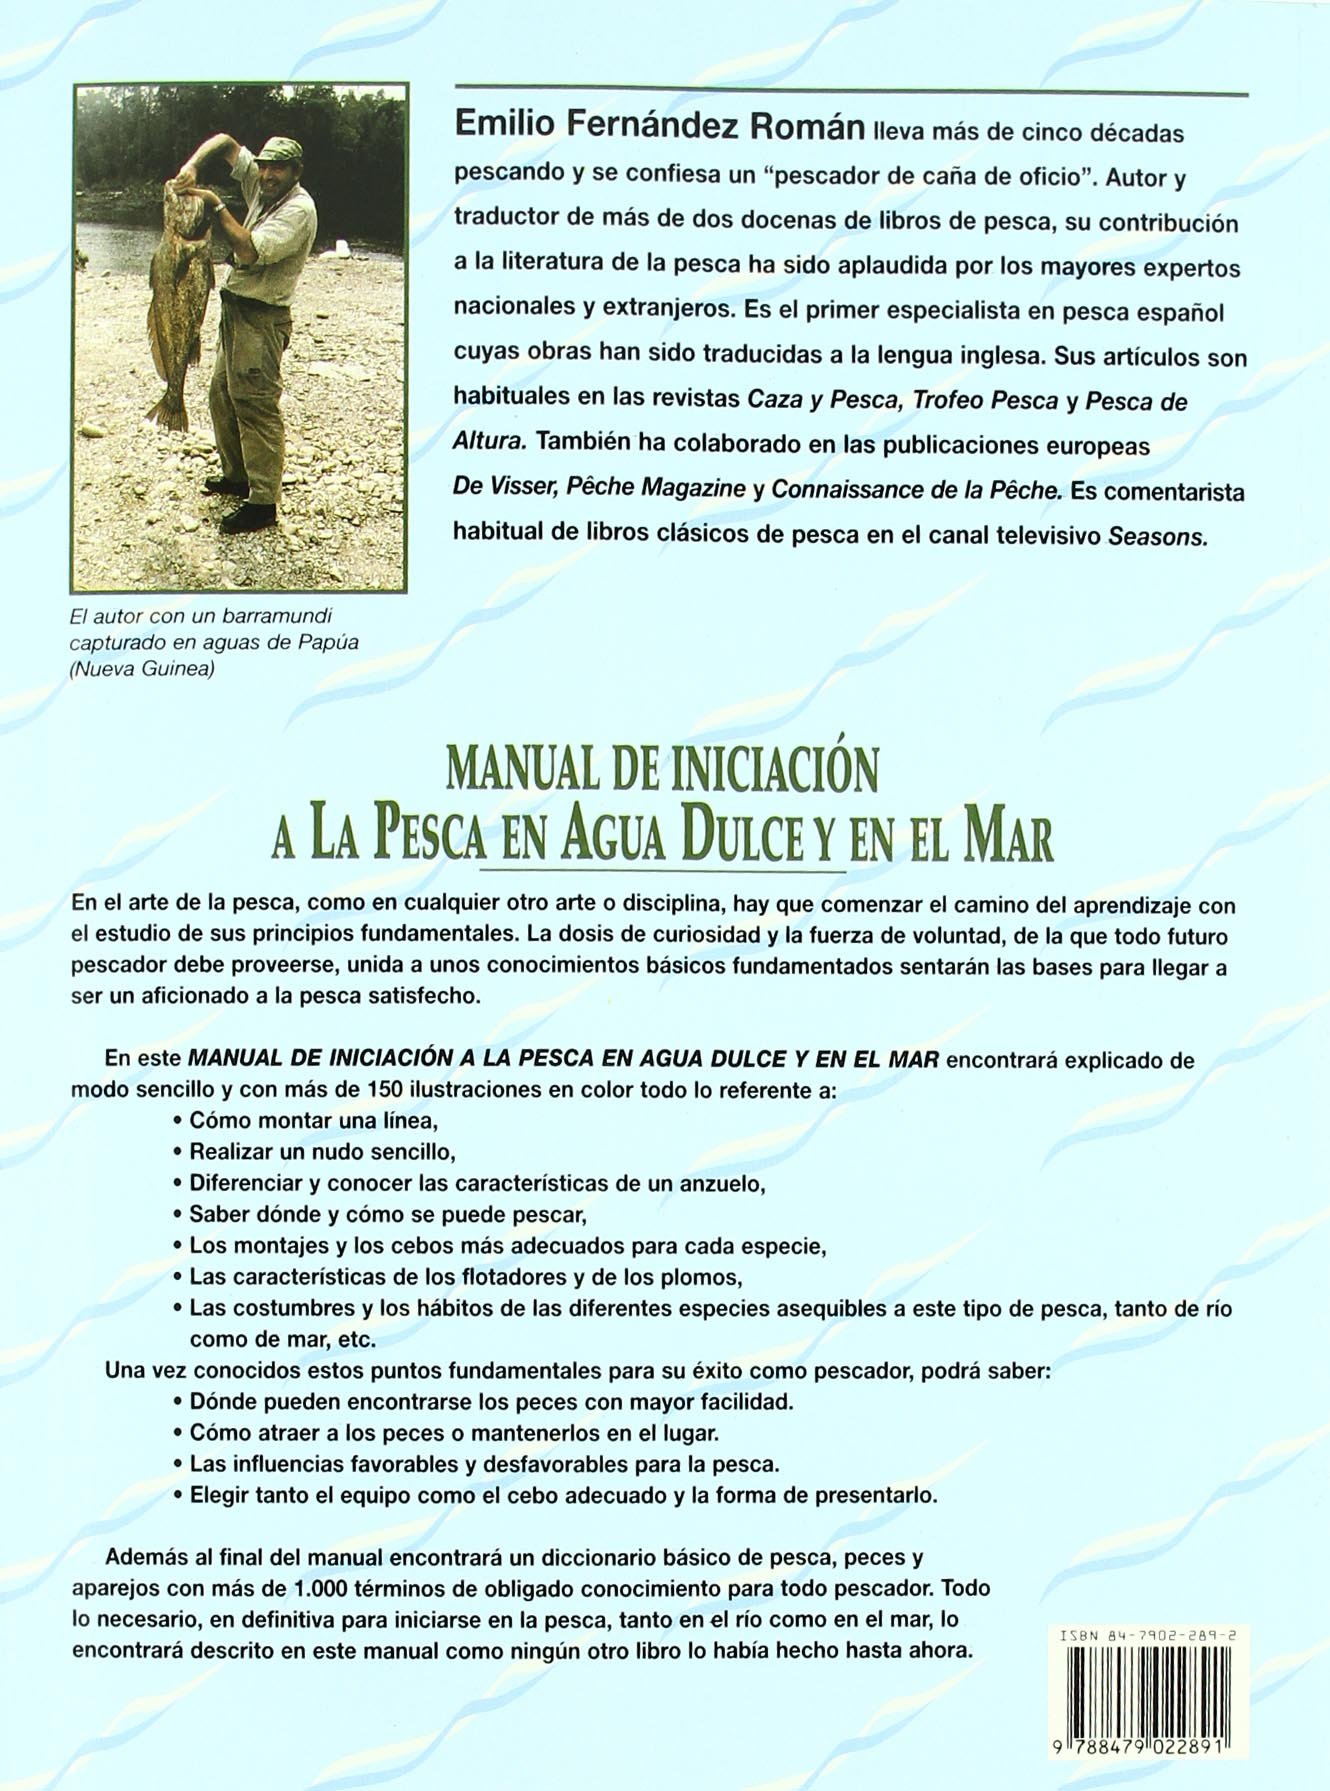 Manual de Iniciacion a Pesca En Agua Dulce y Mar (Spanish Edition): Emilio Fernandez Roman: 9788479022891: Amazon.com: Books